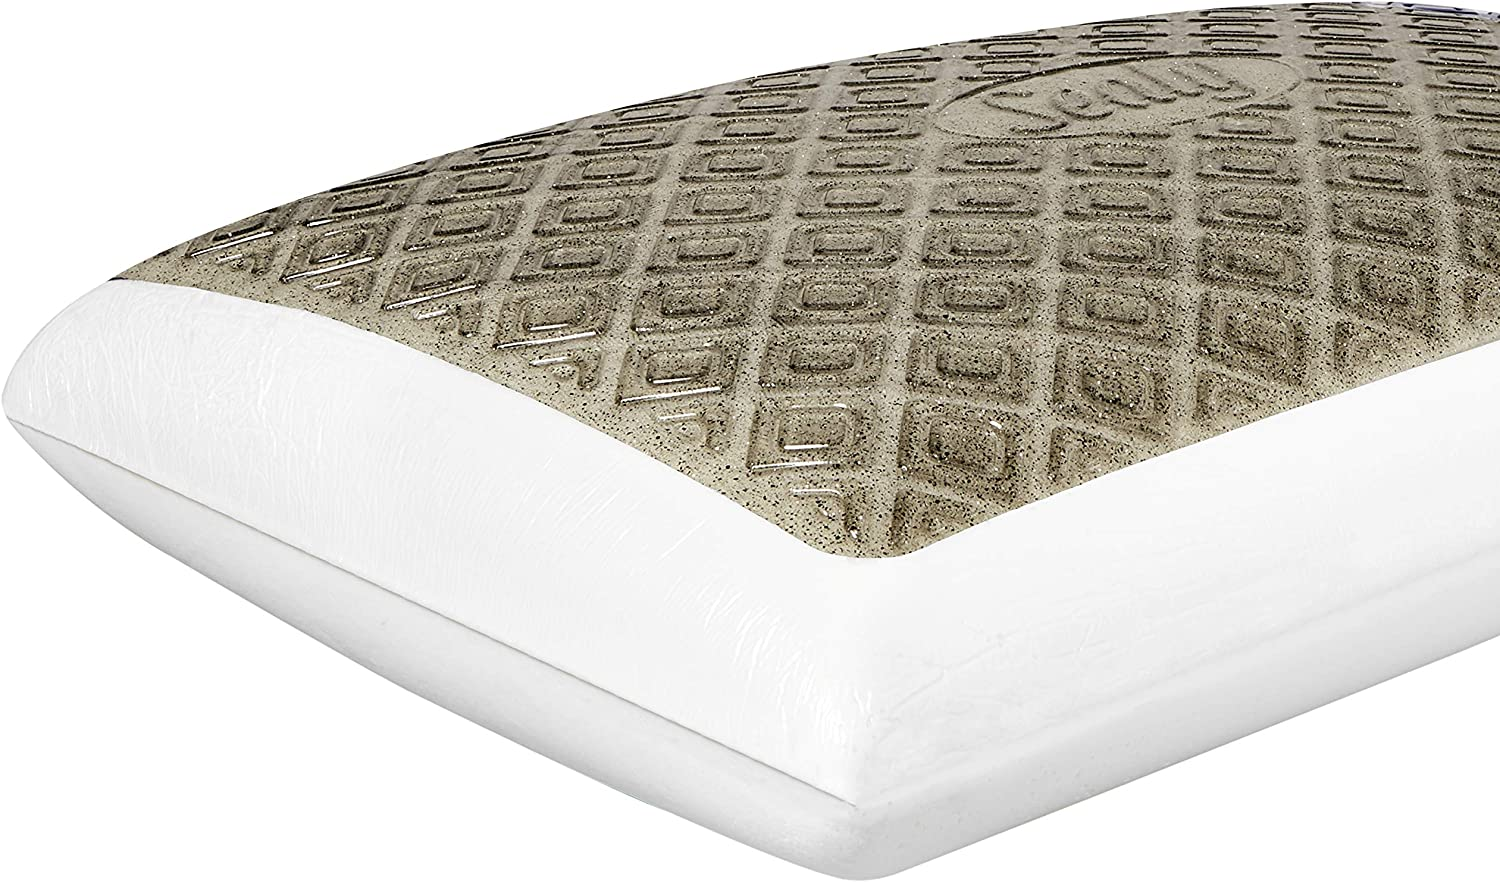 Sealy Charcoal CoolGel Memory Foam Standard Size Bed Pillow, White